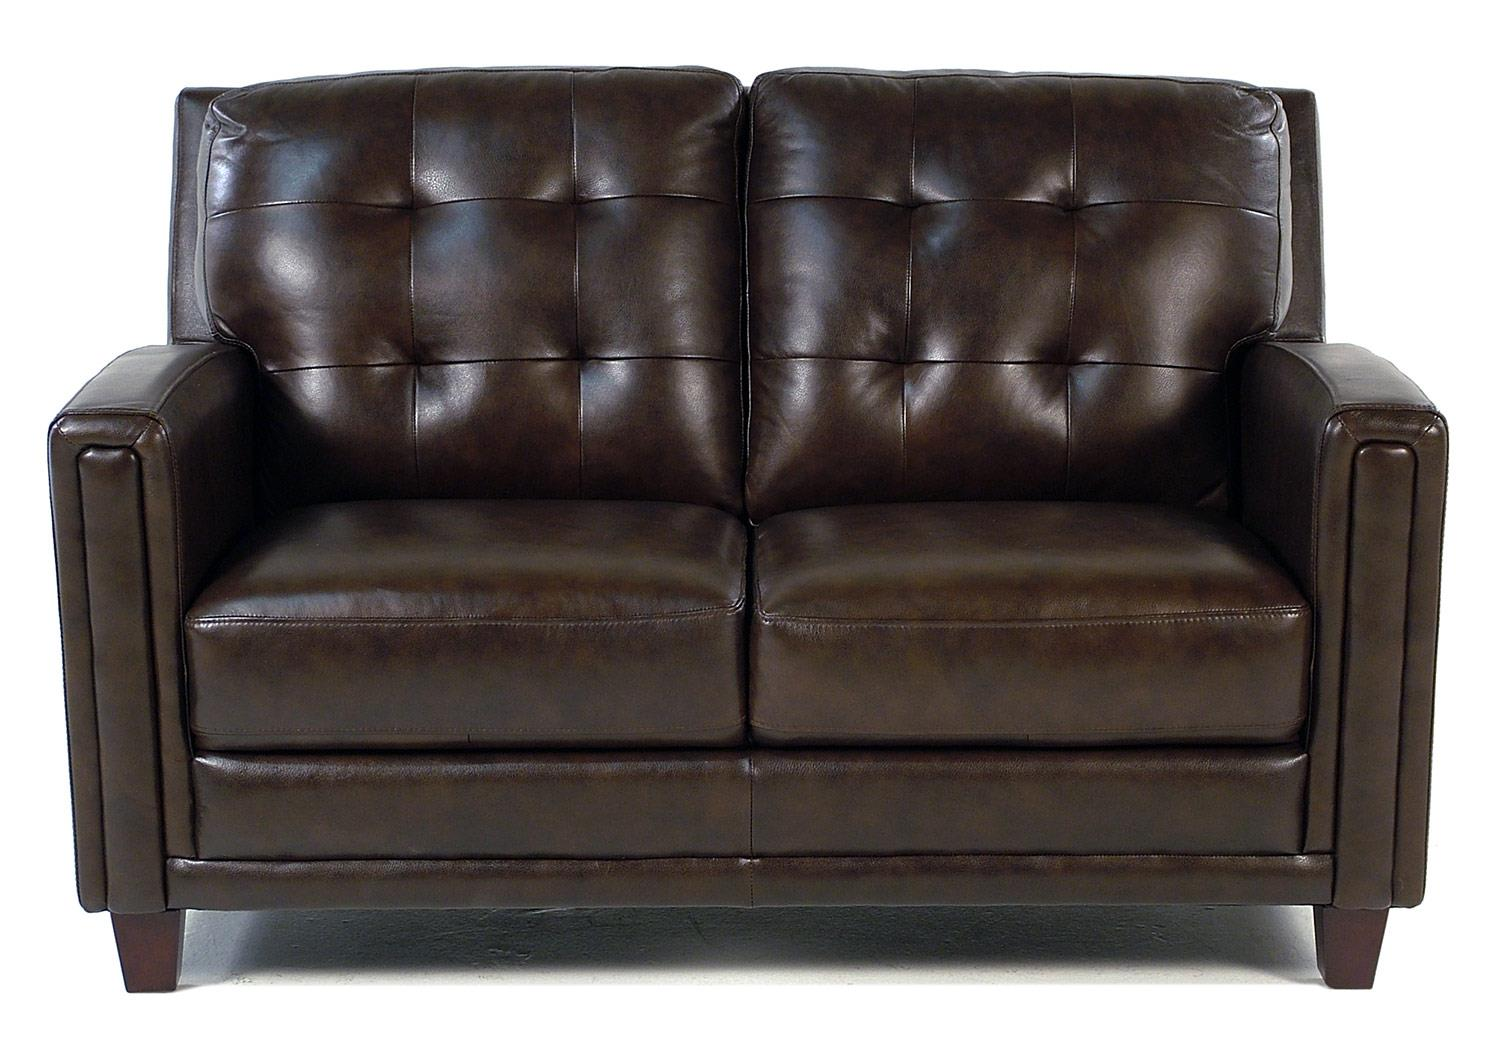 Loft Leather Winfield Leather Loveseat - Item Number: 8583-20